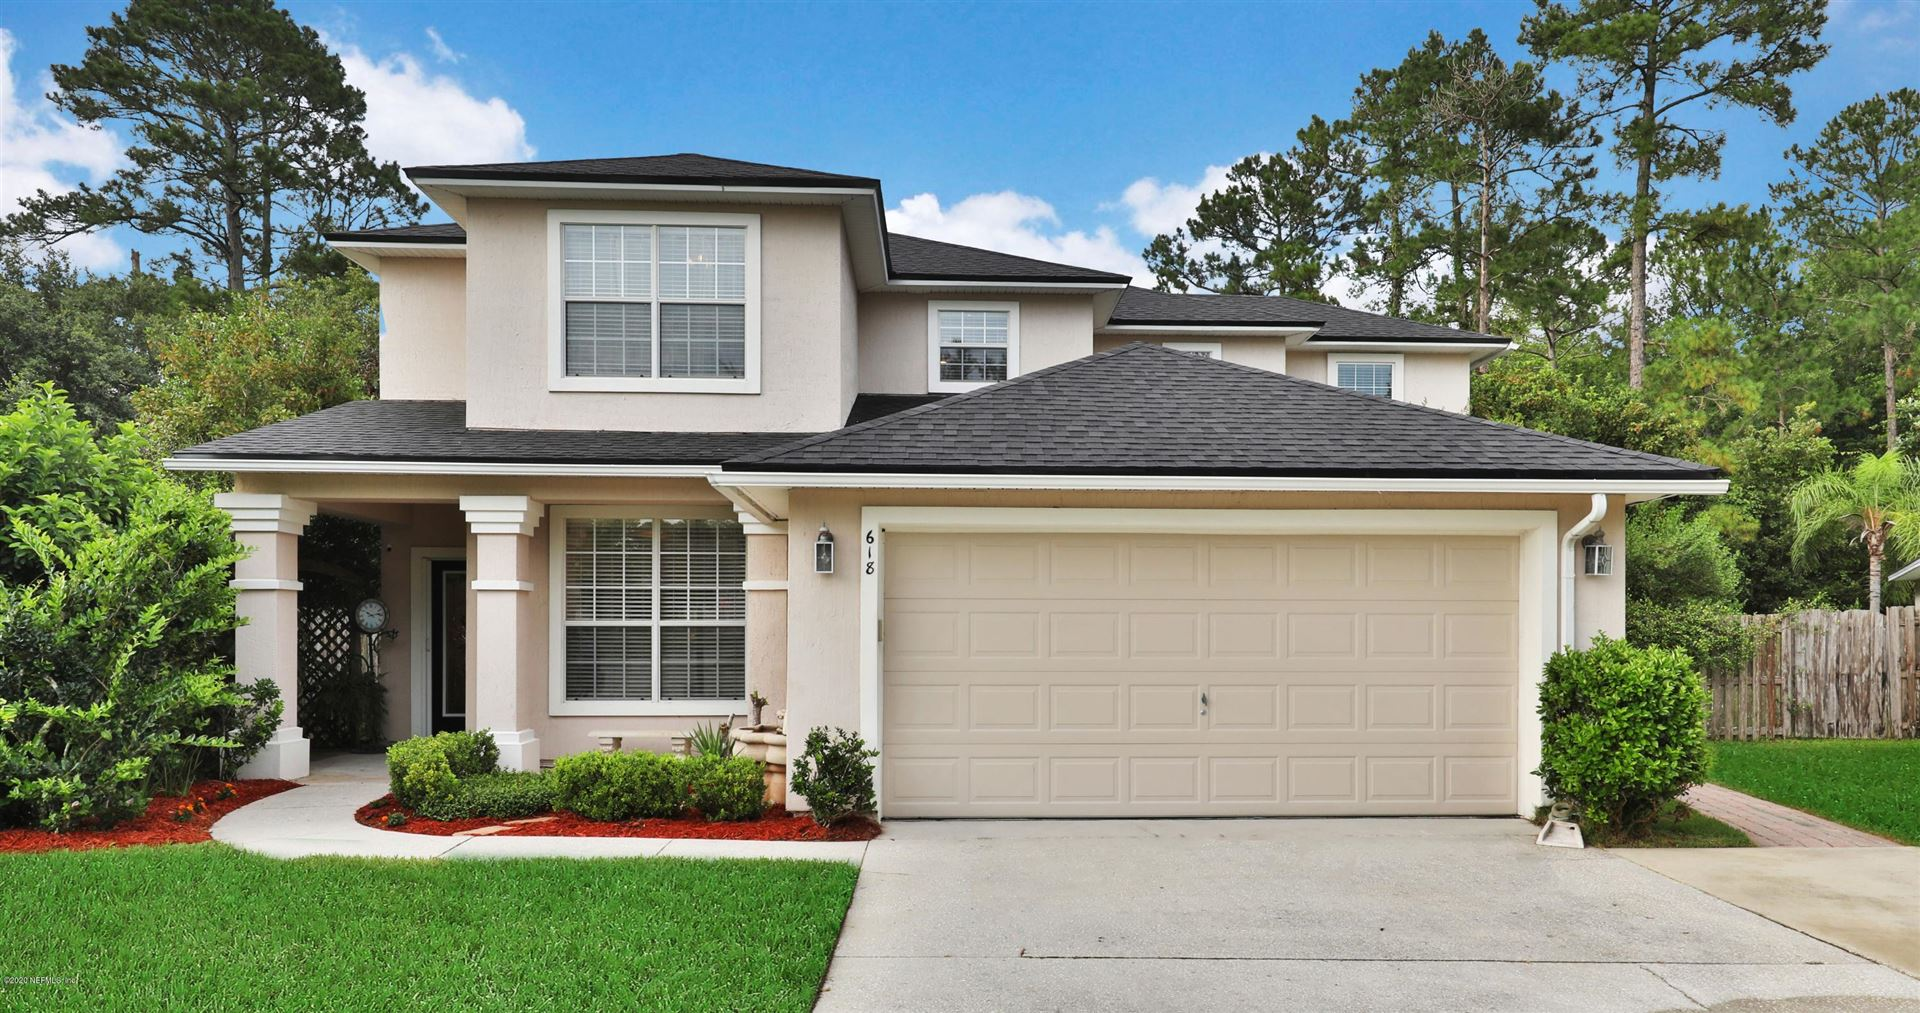 618 RACOON CT, Saint Johns, FL 32259 - MLS#: 1059171